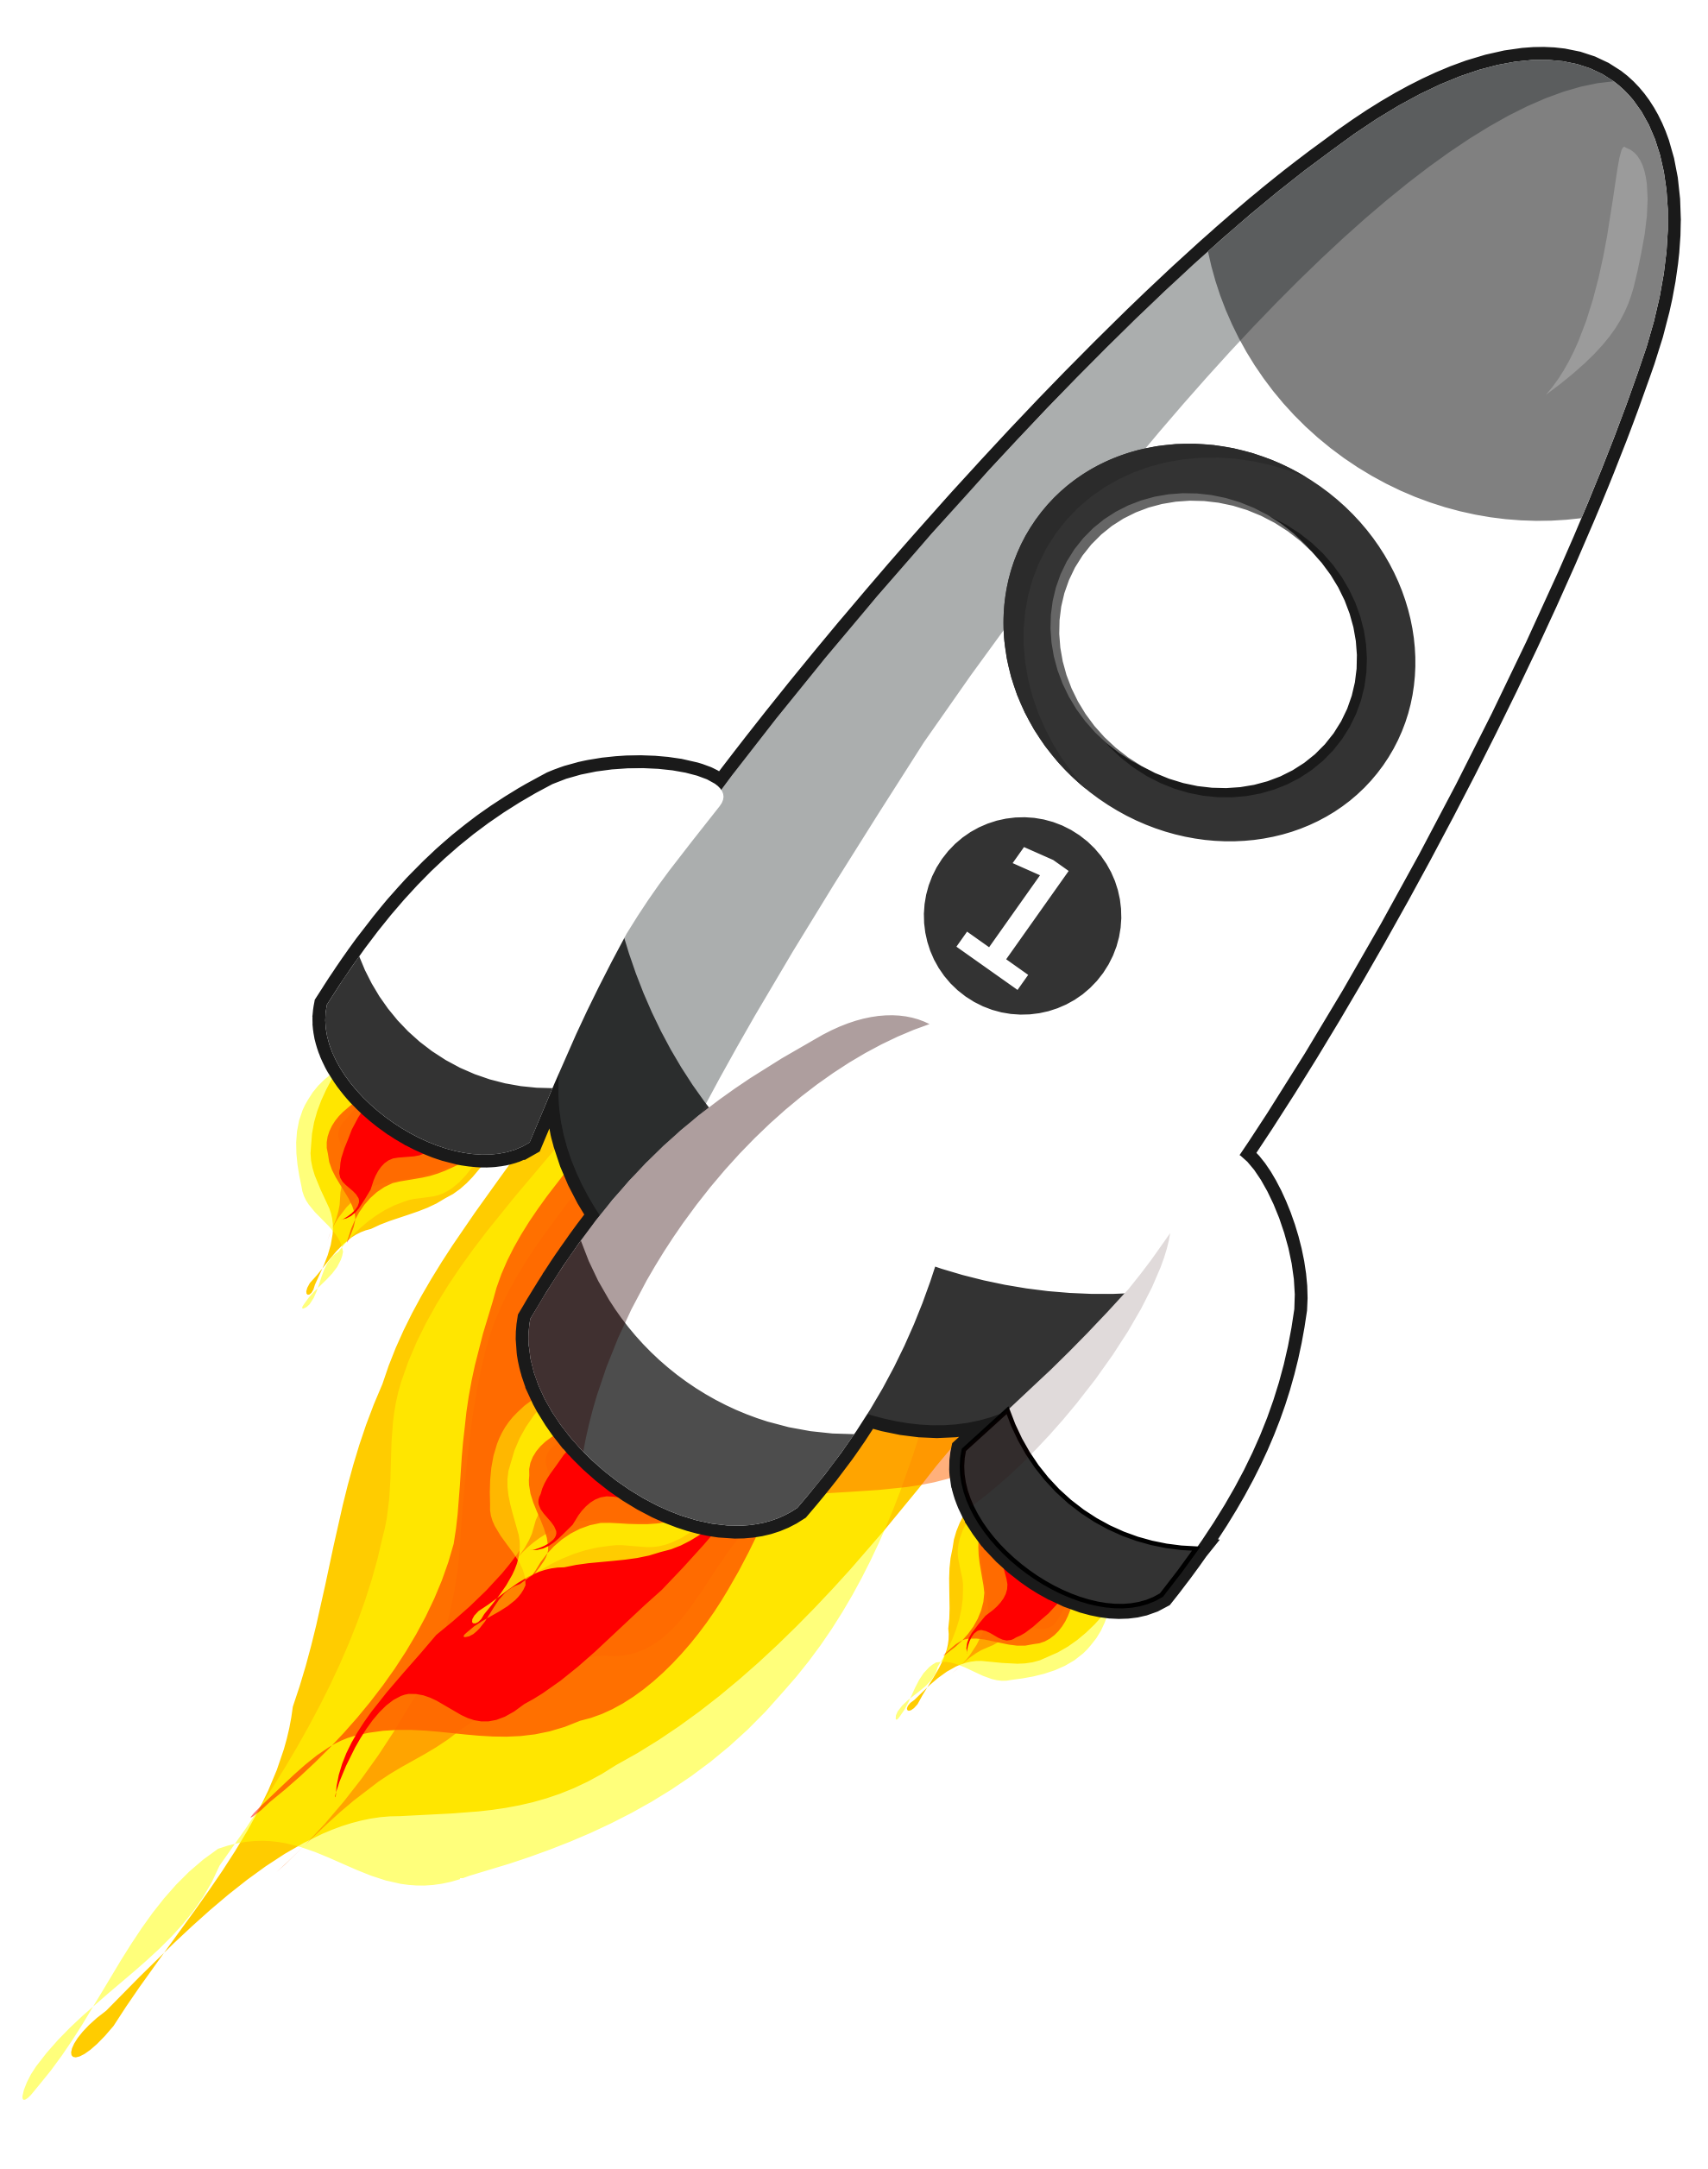 Spaceship clipart bmp.  collection of rocket